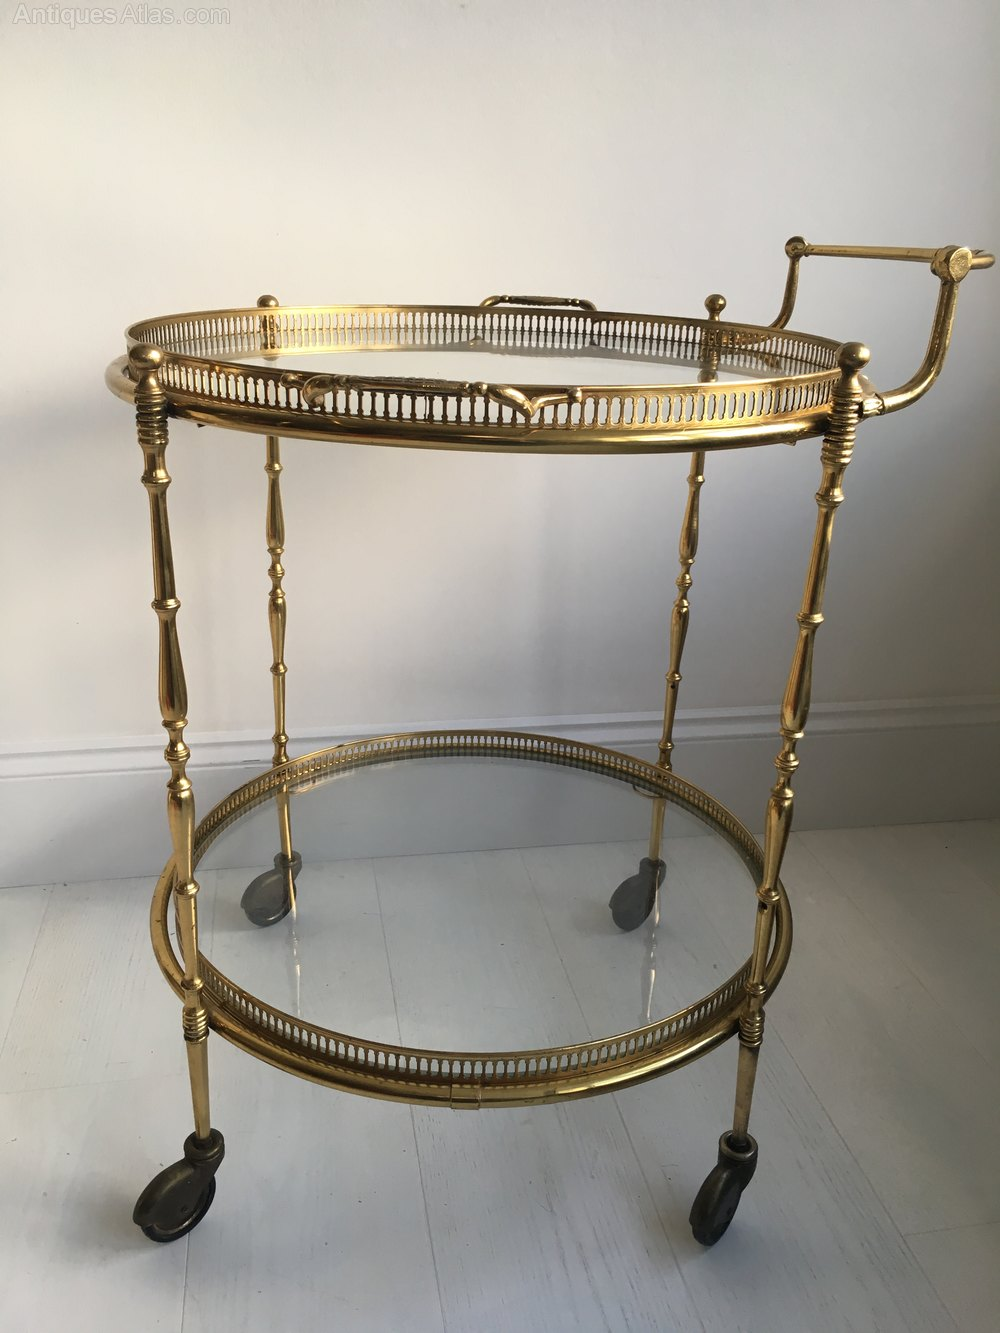 Antiques Atlas Vintage French Circular Drinks Trolley Bar Cart